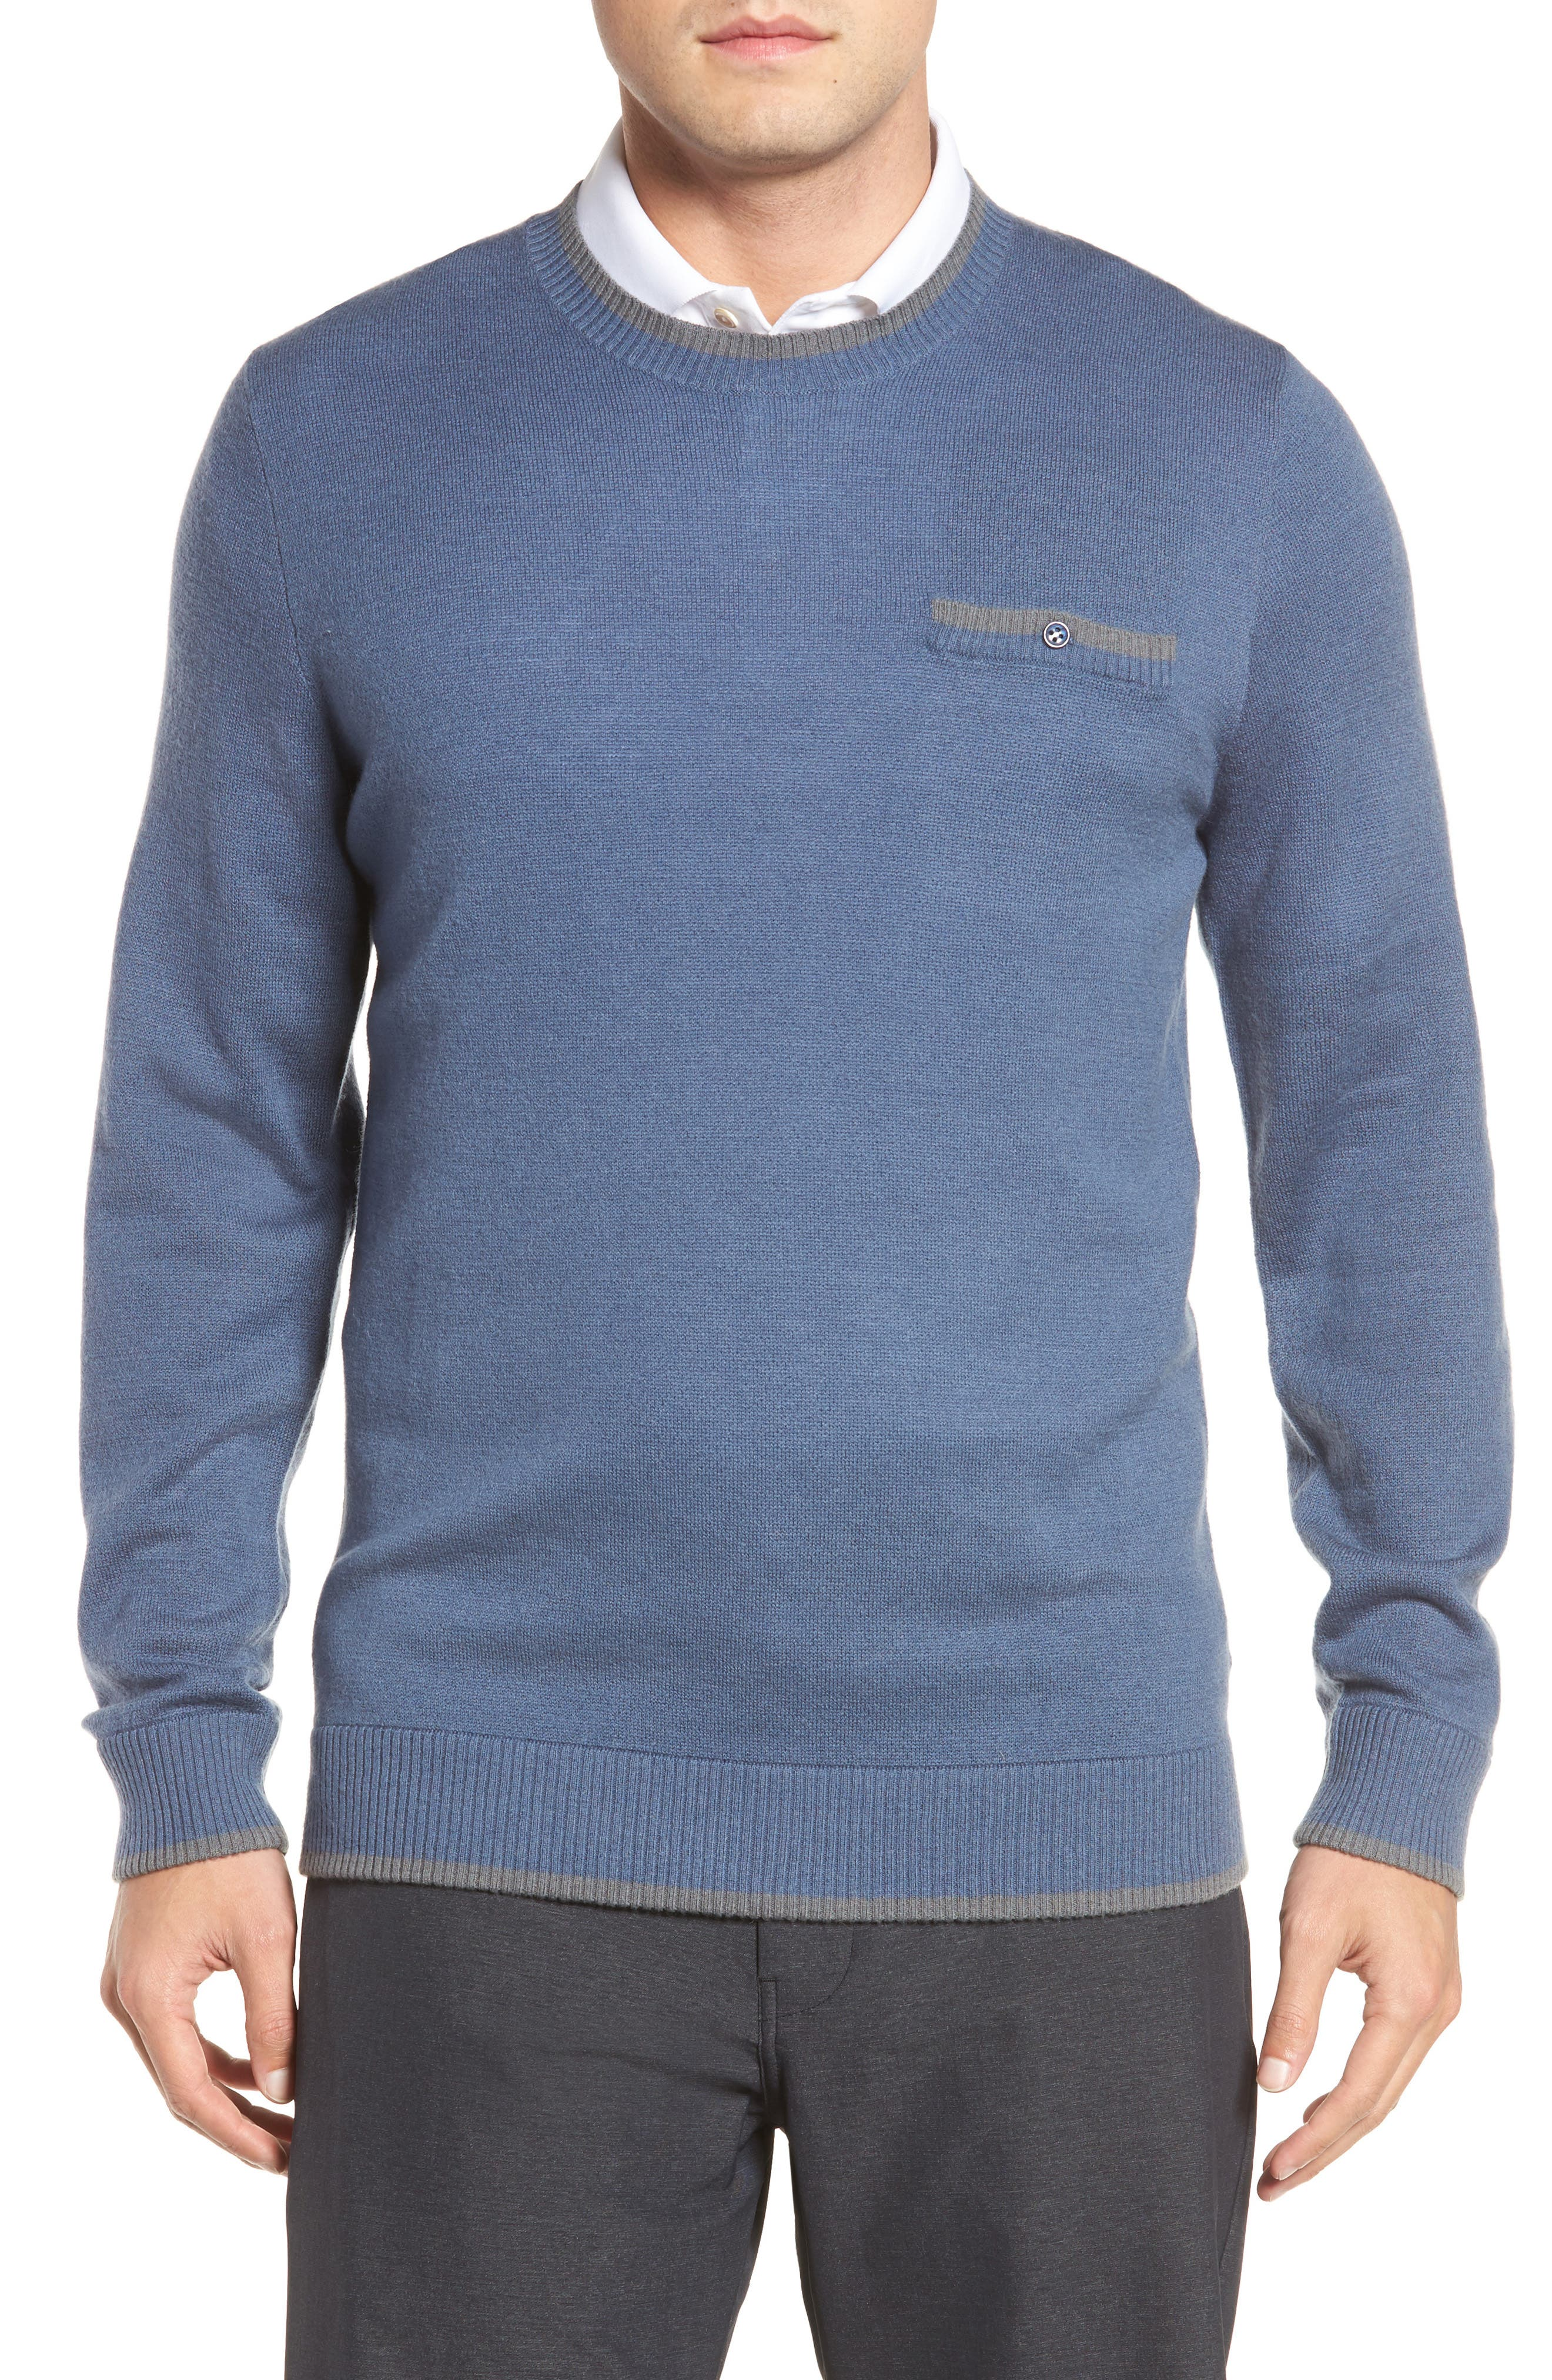 Paglia Wool Blend Sweater,                             Main thumbnail 1, color,                             400